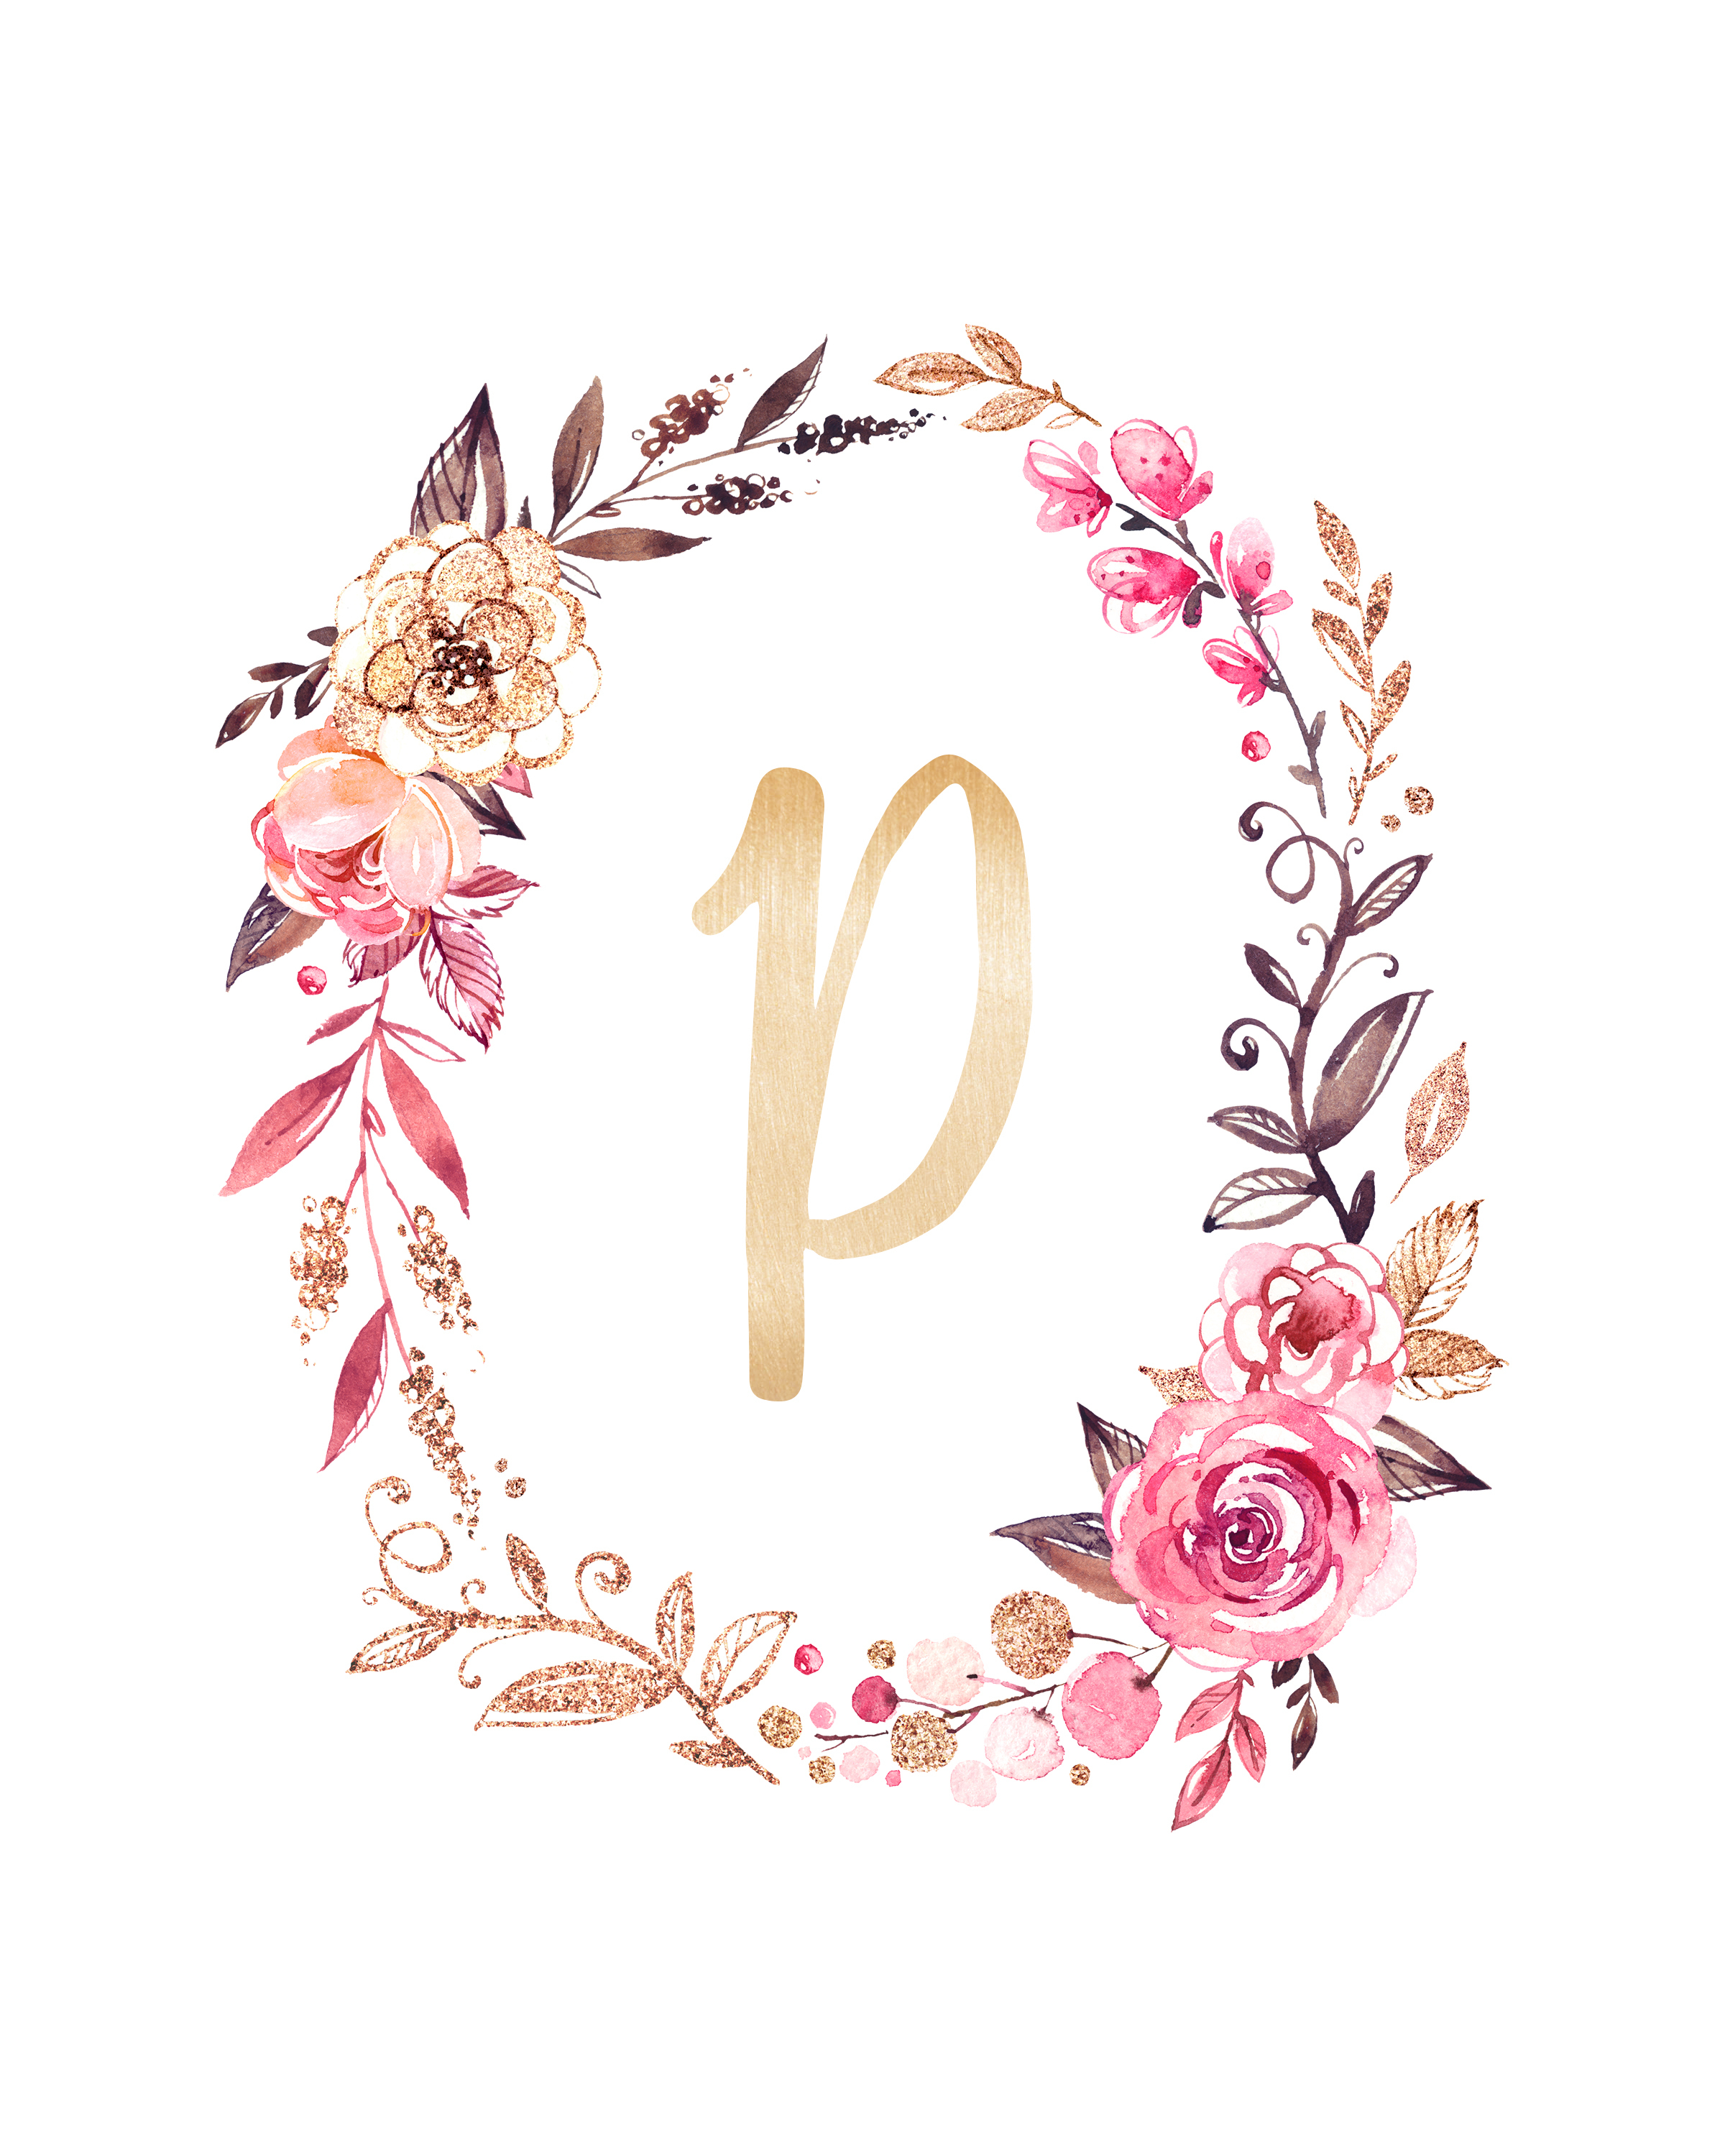 Free Glitter And Glam Monogram Printables | The Cottage Market - Free Printable Monogram Letters